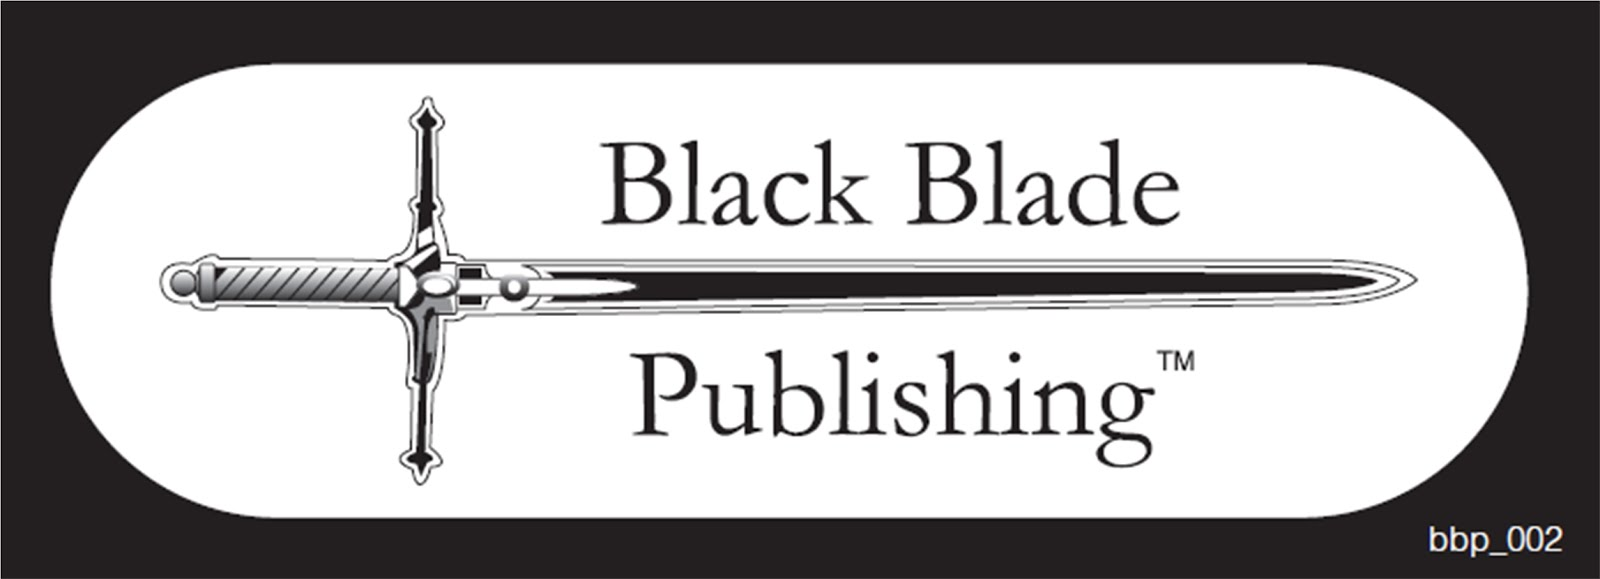 Black Blade Publishing